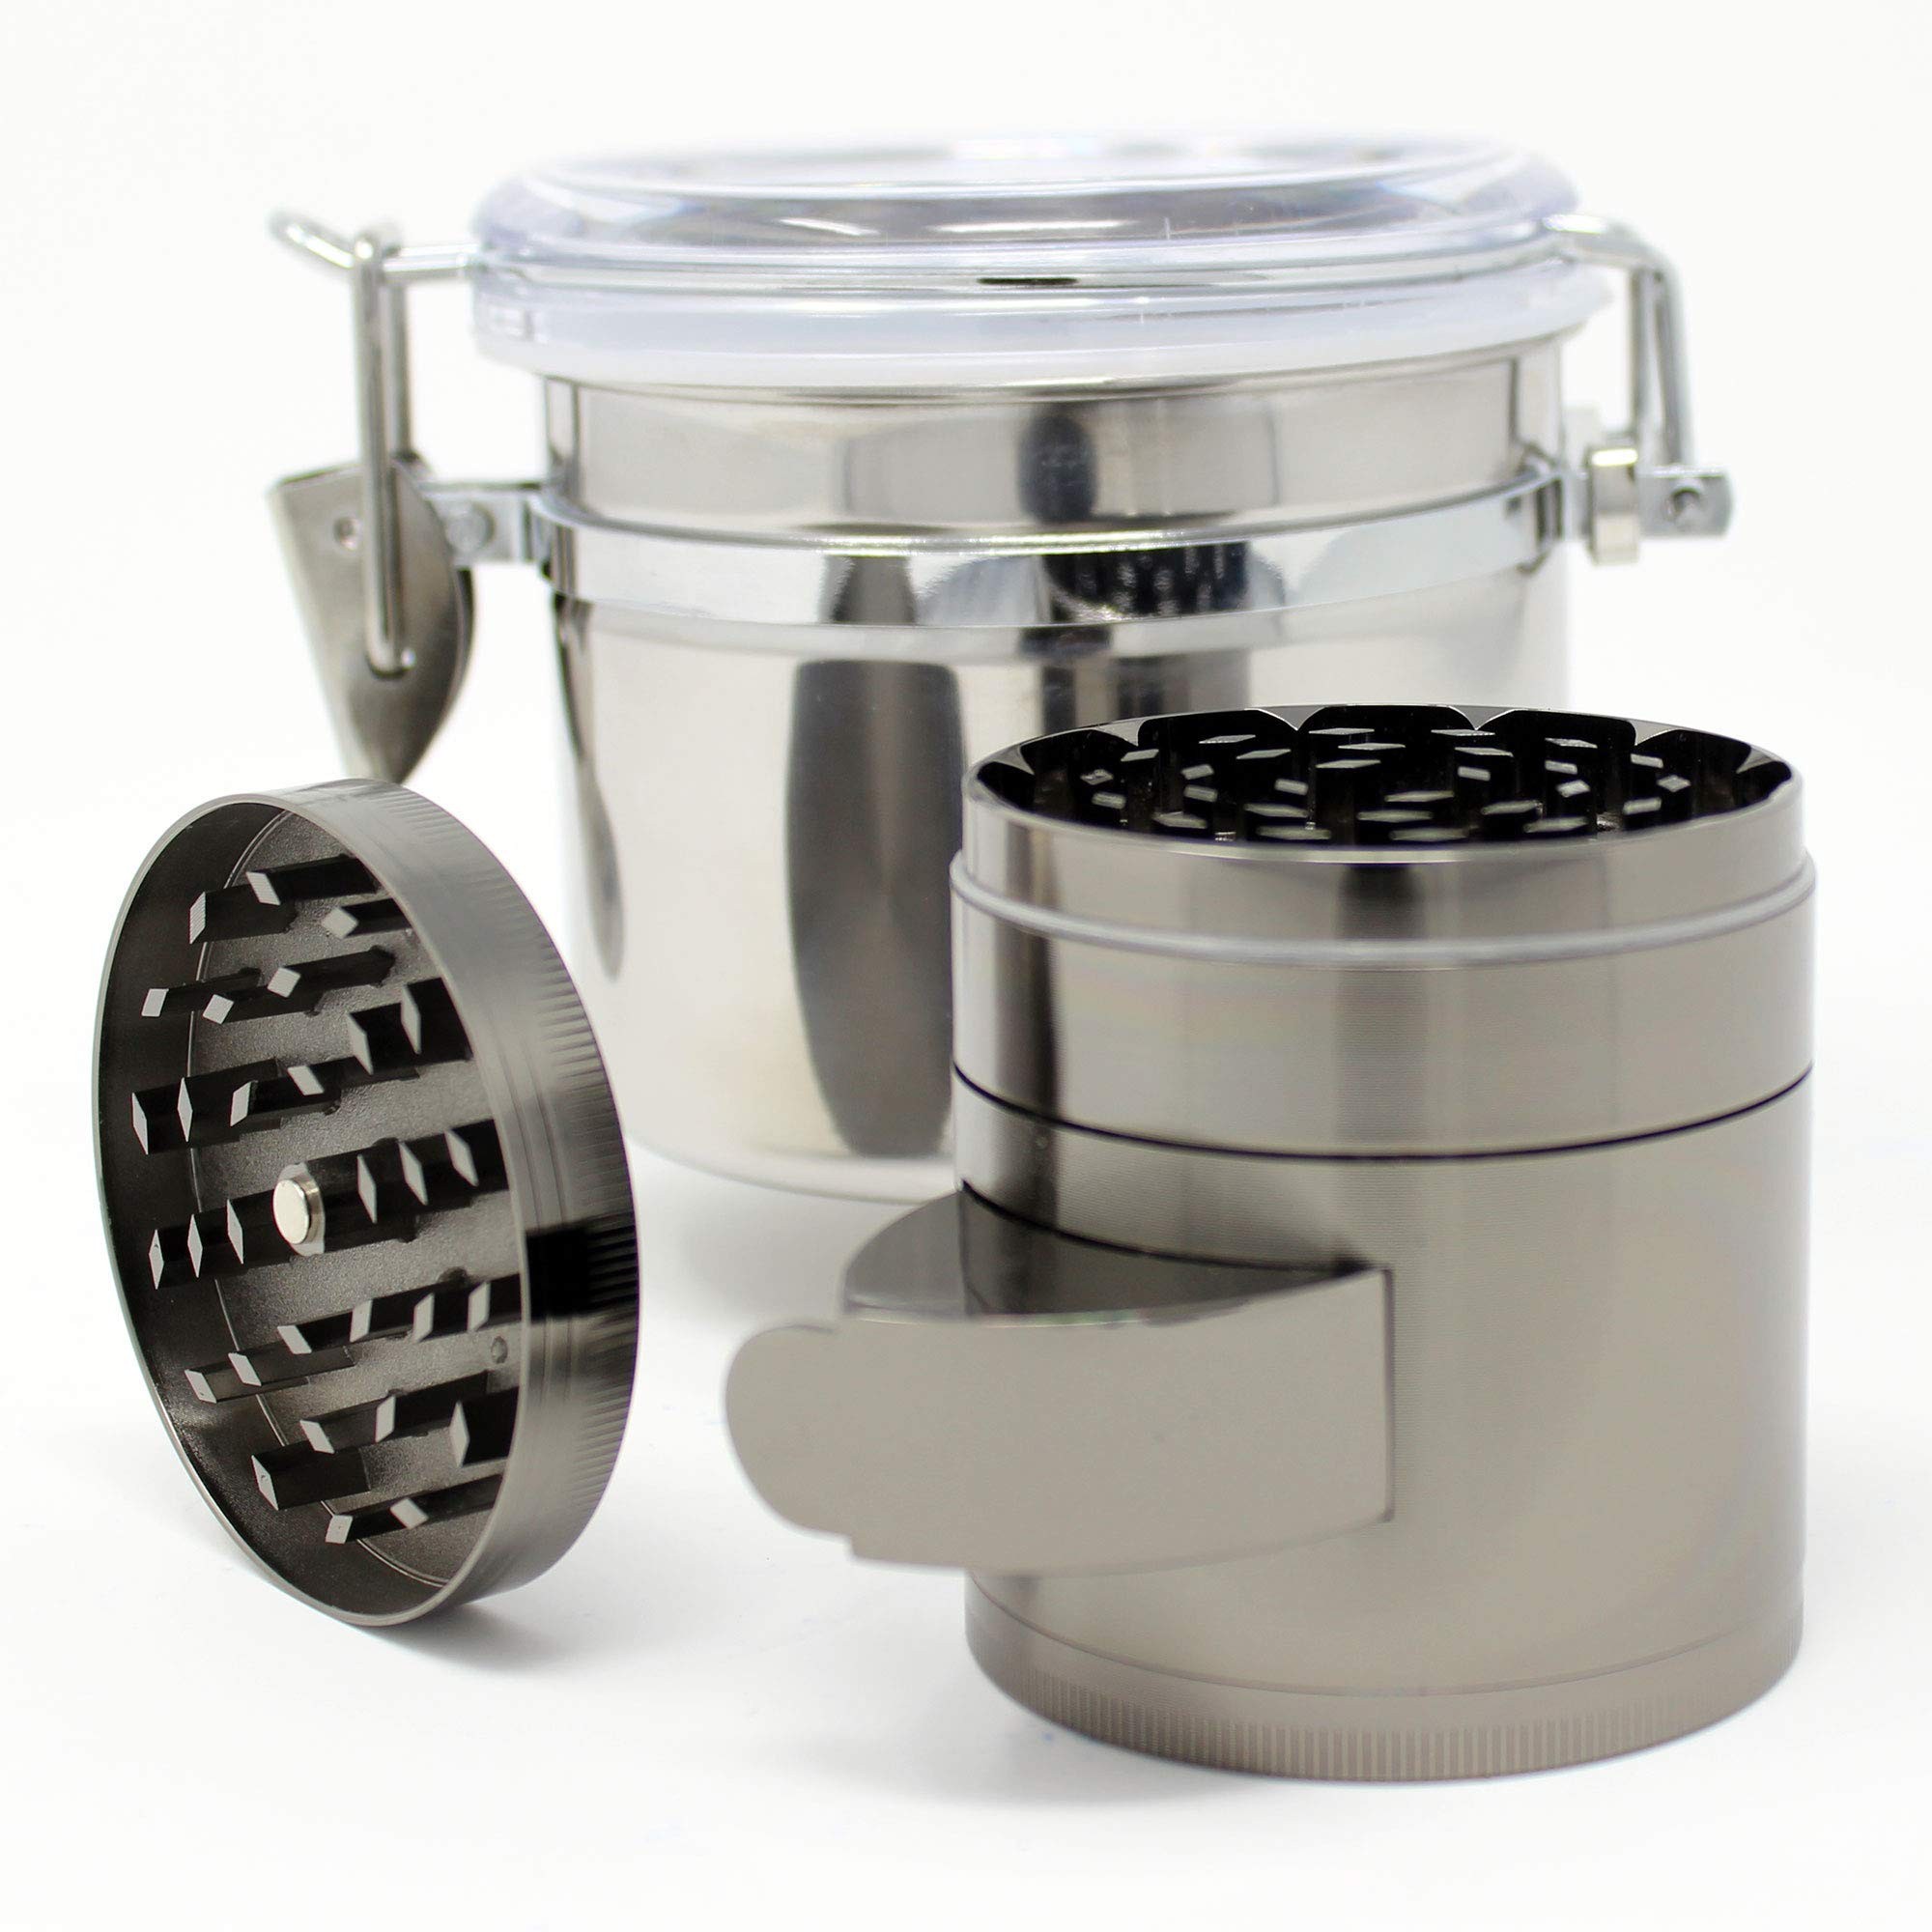 CrudeMechanics 2-in-1 Grinder and Canister Travel Pack - Crush/Store Herbs Spice Weed Tobacco Like a Harvester